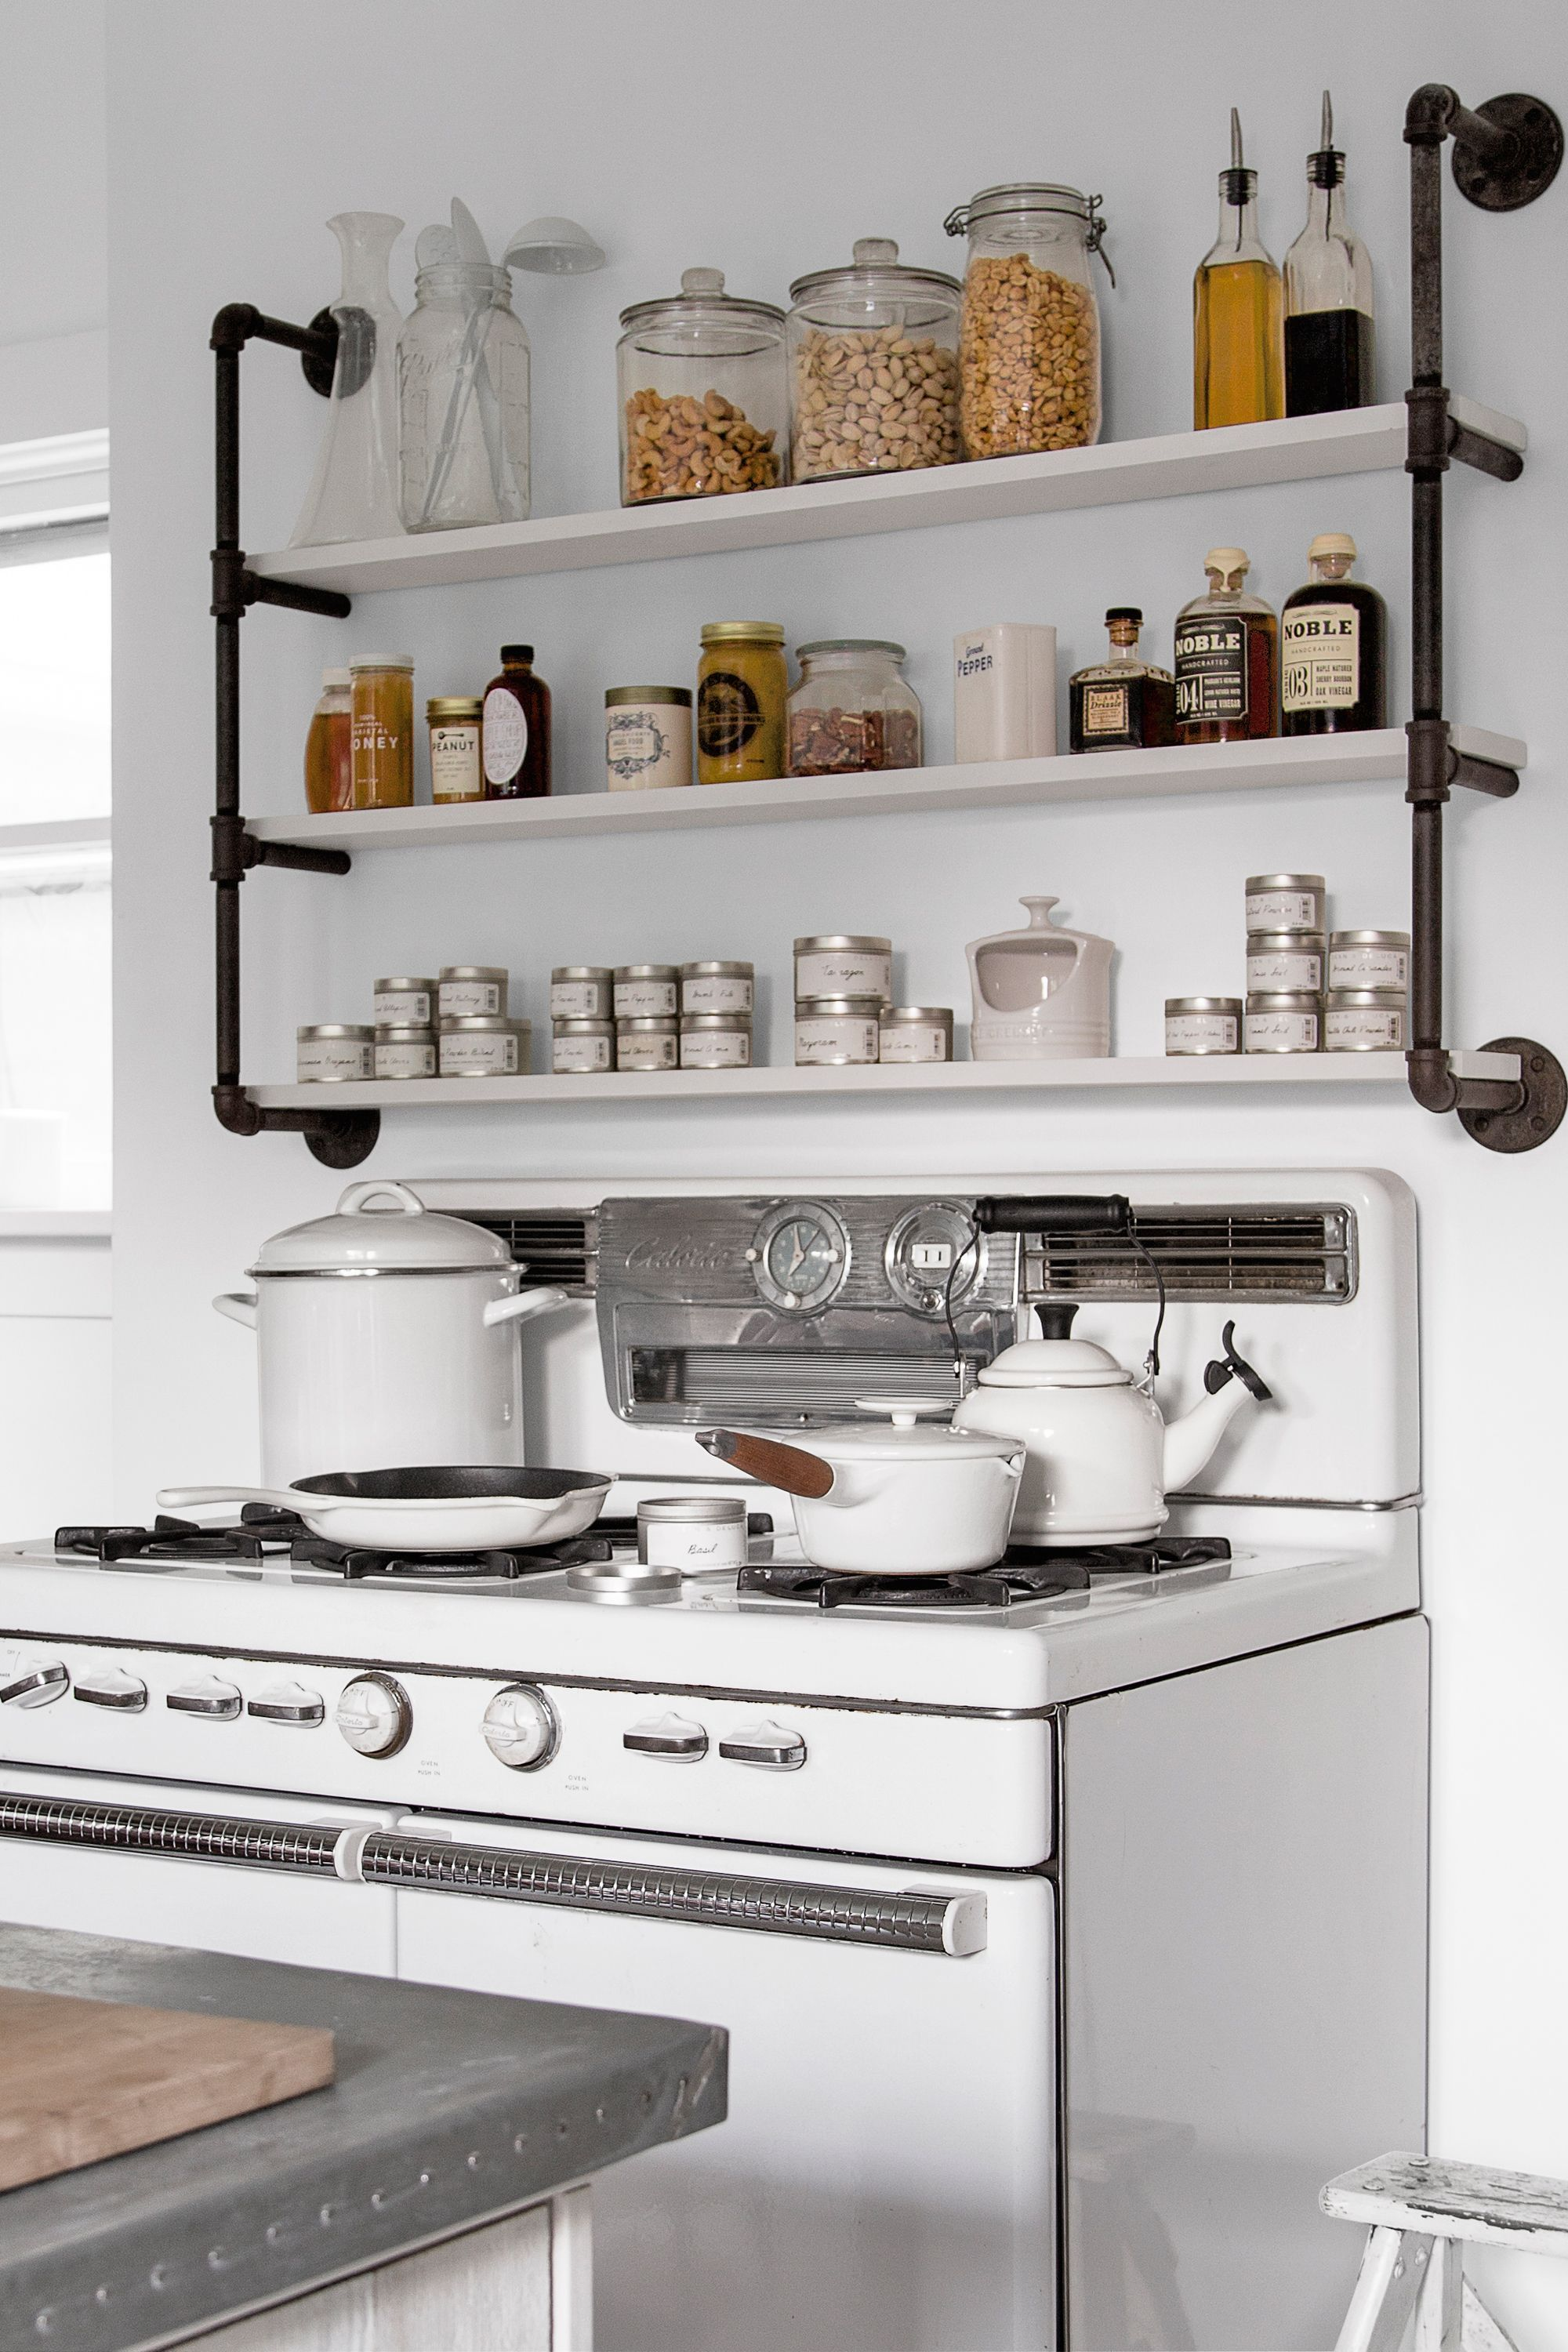 Blickfang Küche Industriedesign Beste Wahl Trial Shelves Over The Stove